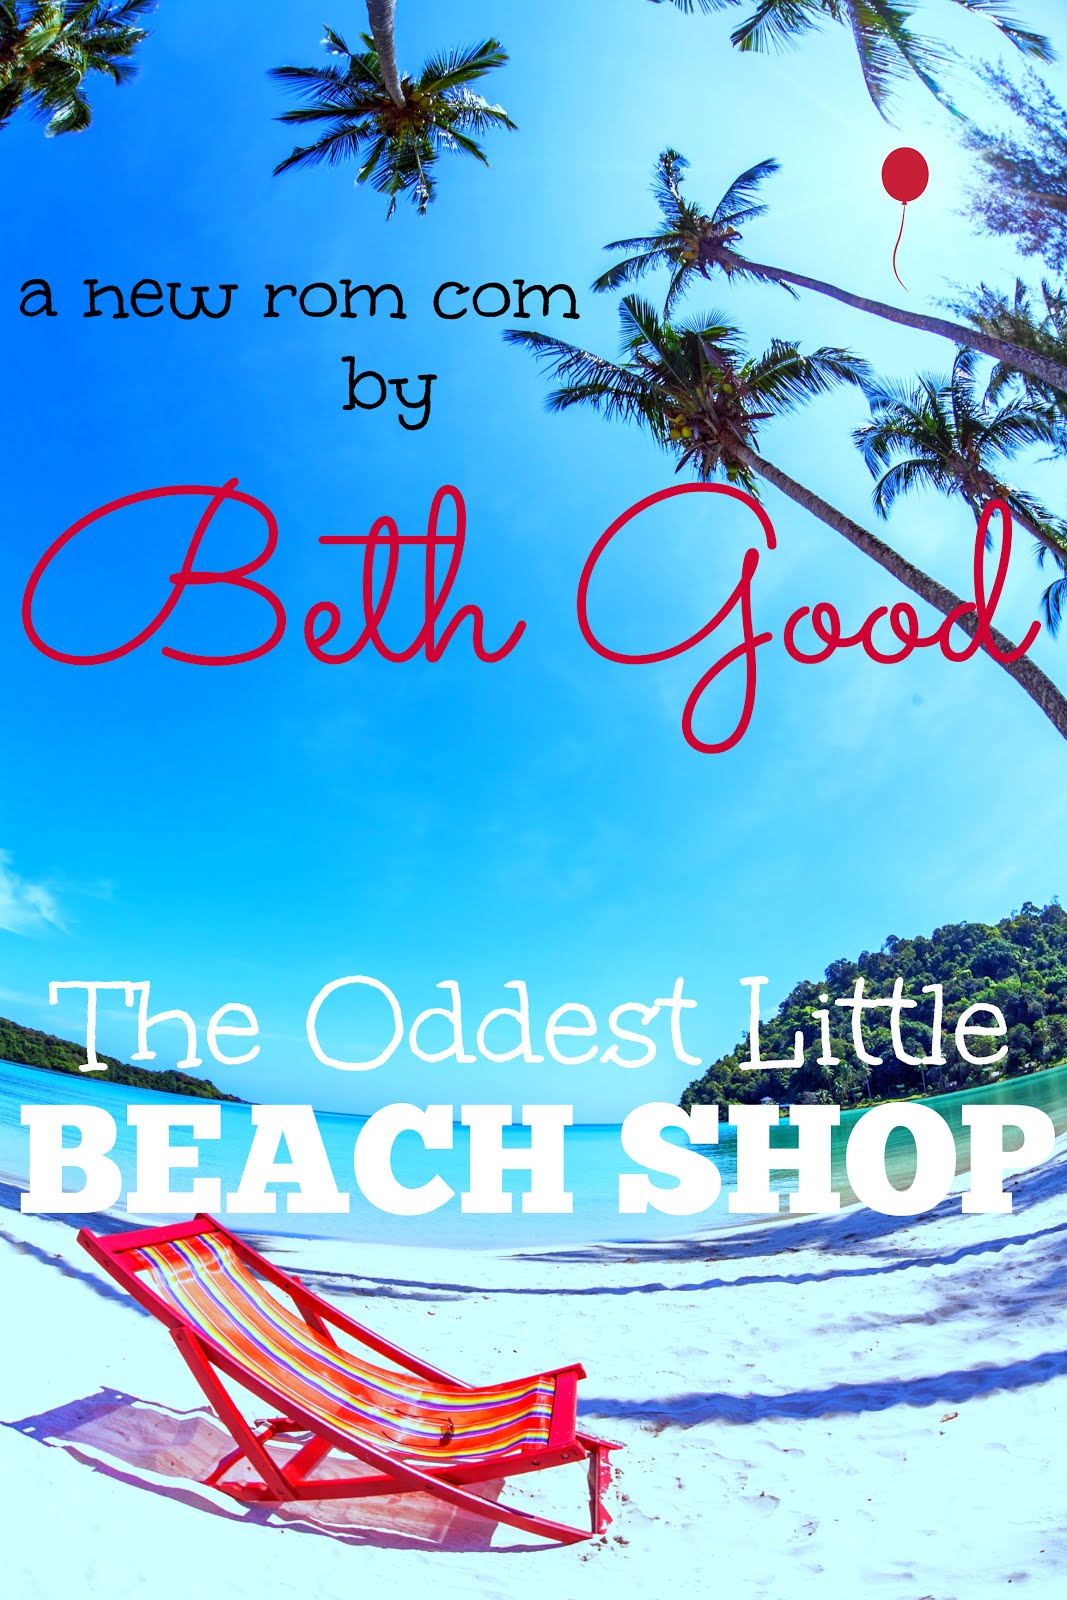 THE ODDEST LITTLE BEACH SHOP